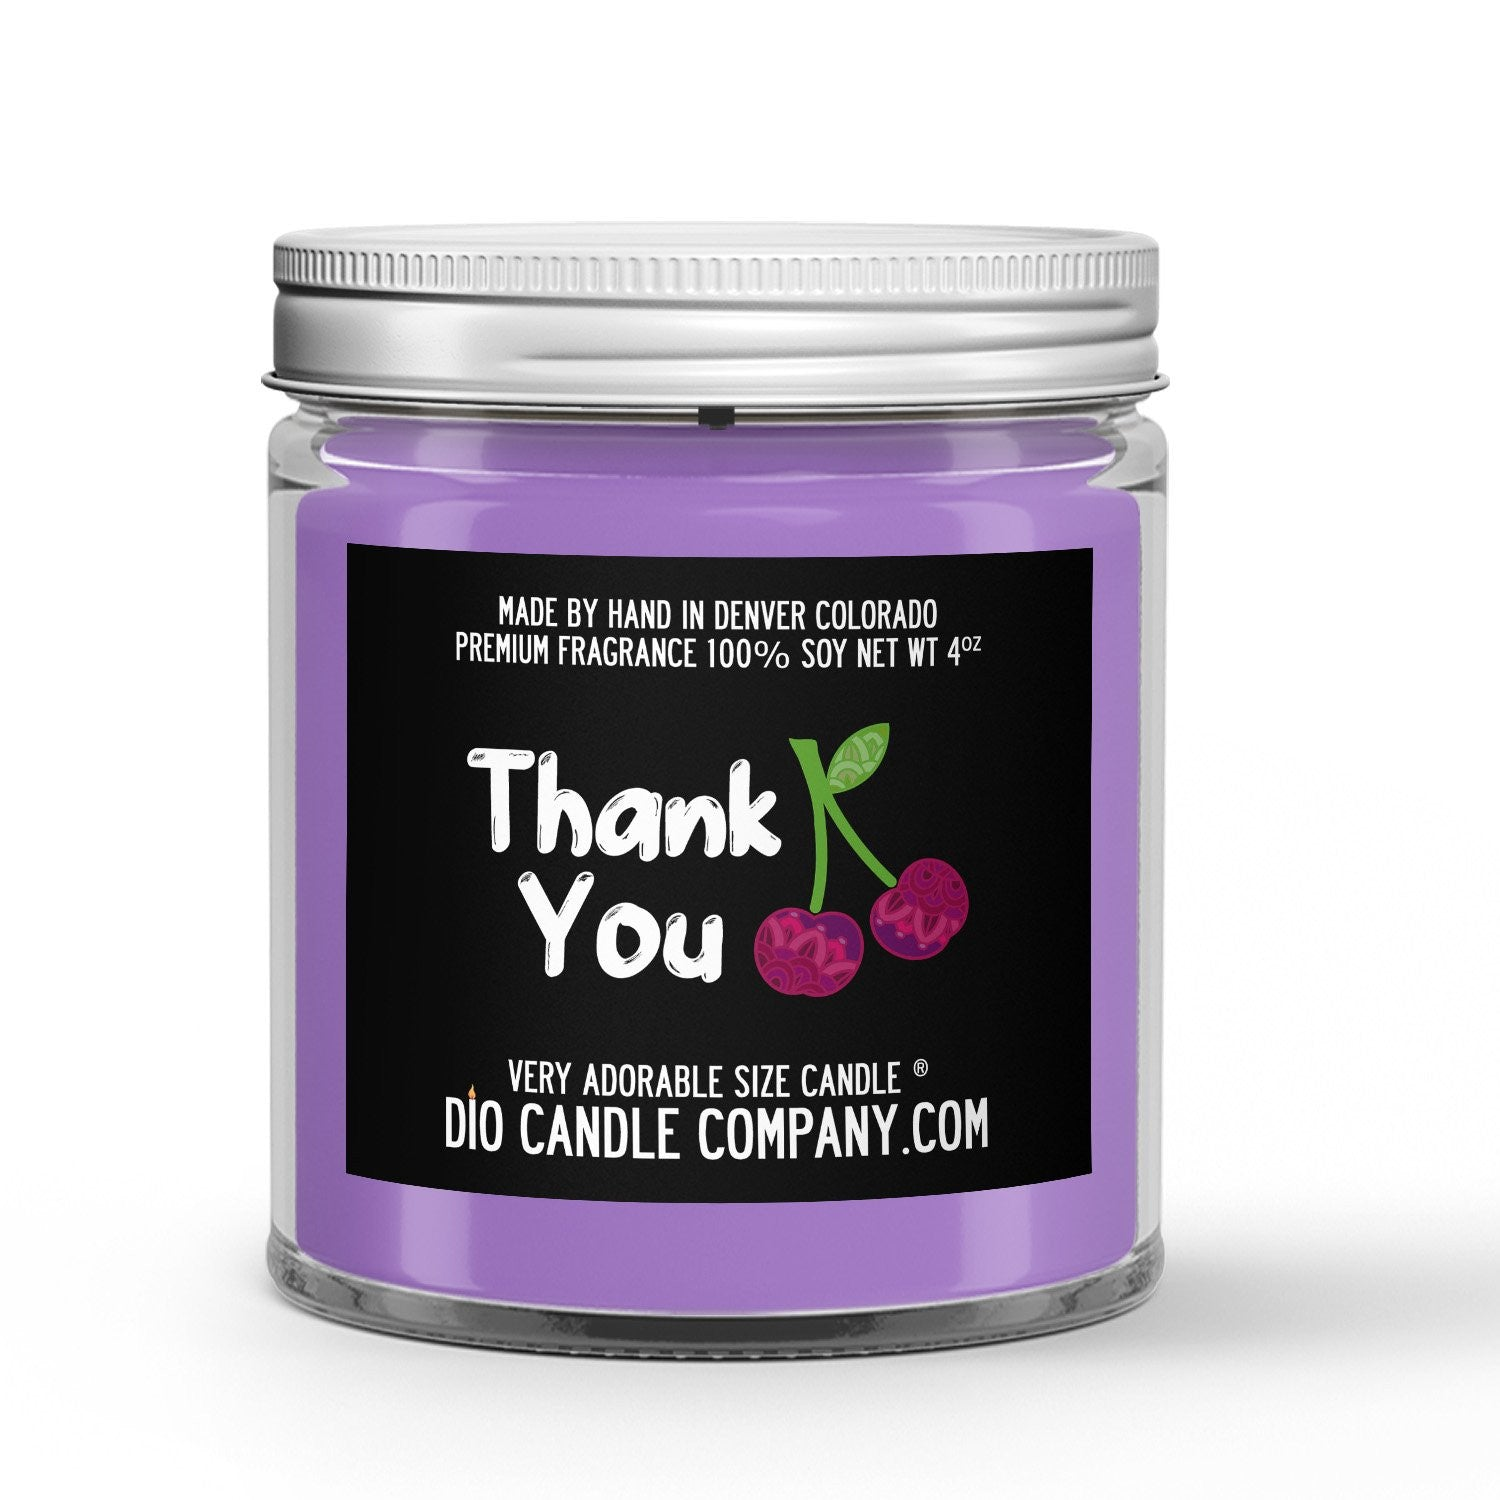 Gratitude Candle - Black Cherry - 4oz Very Adorable Size Candle® - Dio Candle Company